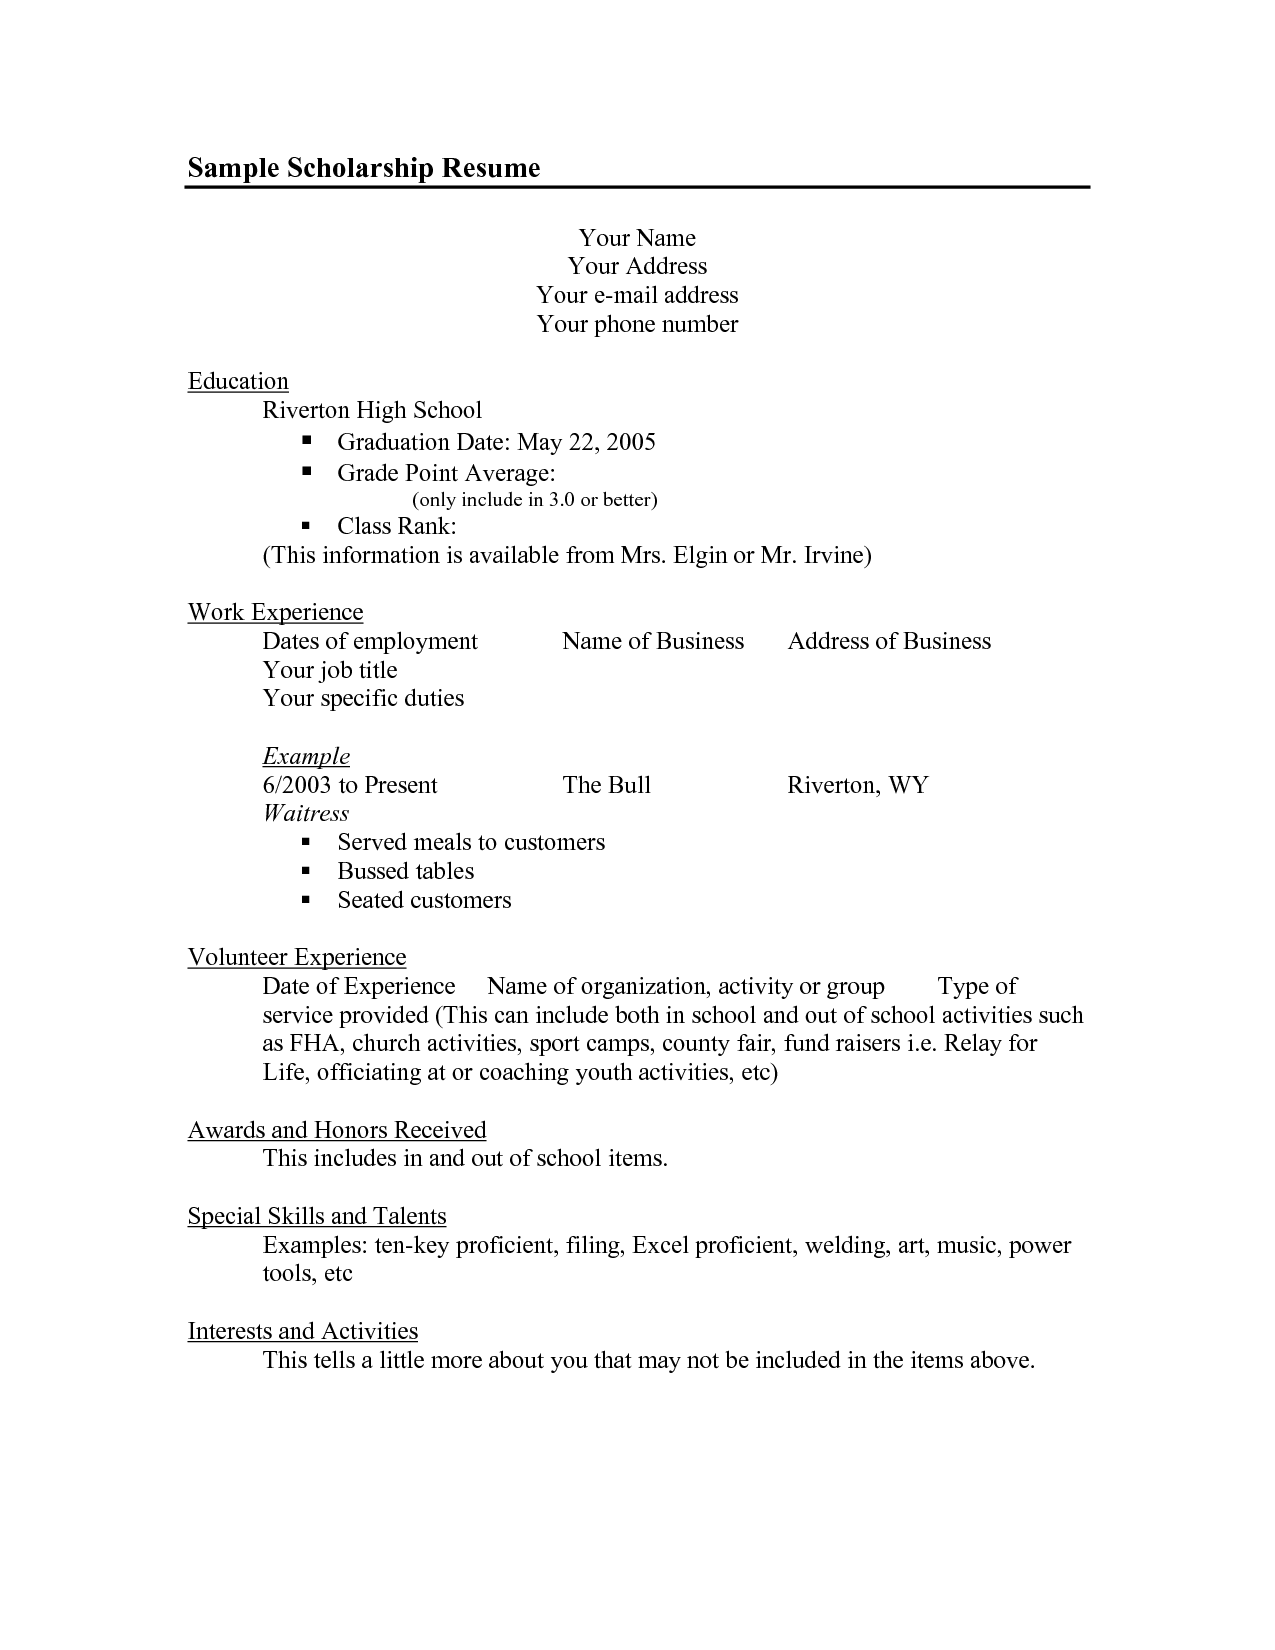 scholarship resume templates sample scholarship resume